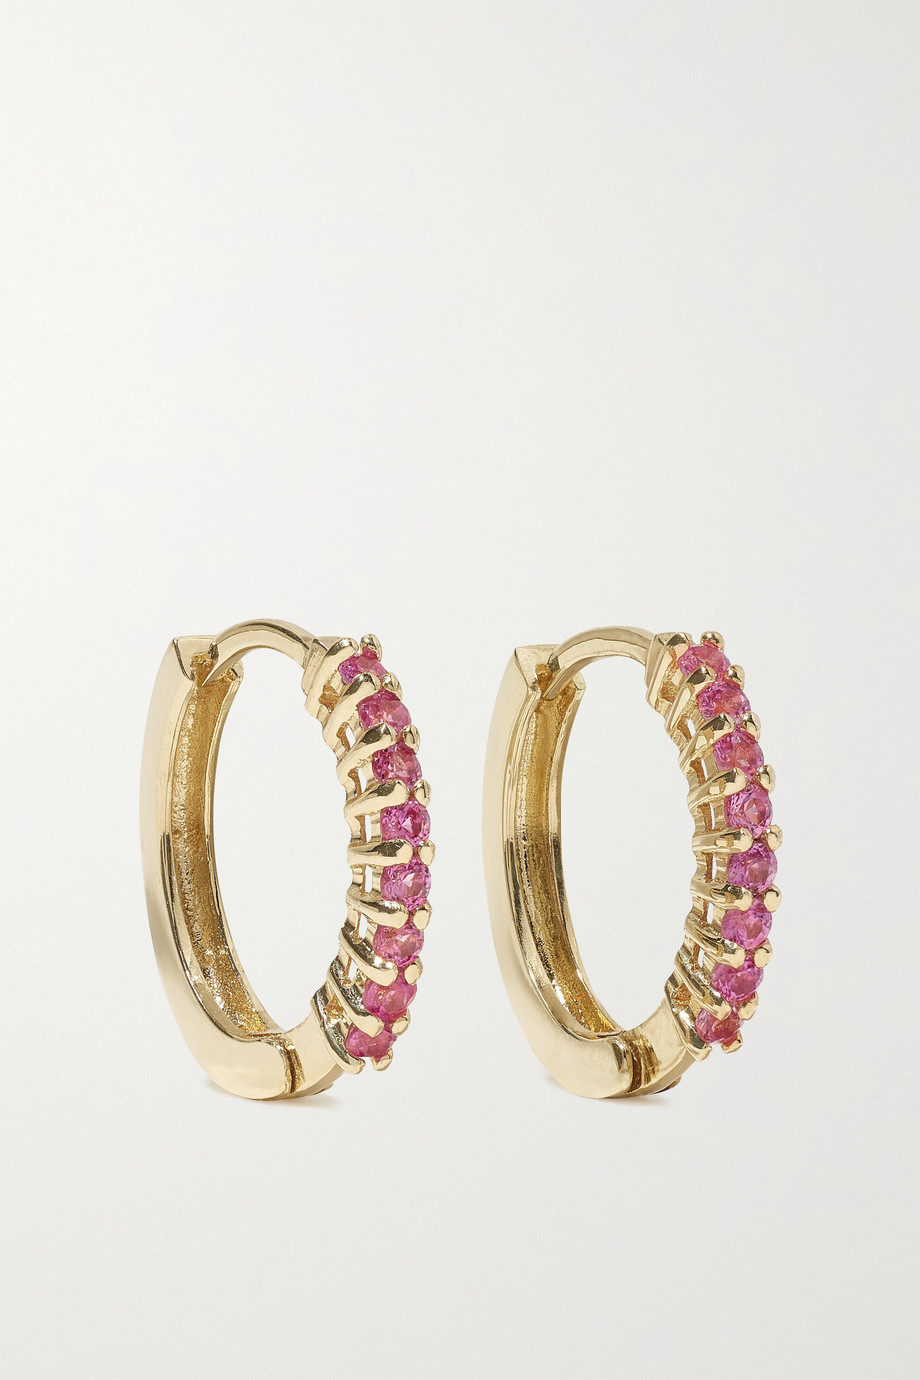 MATEO 14-karat gold sapphire hoop earrings